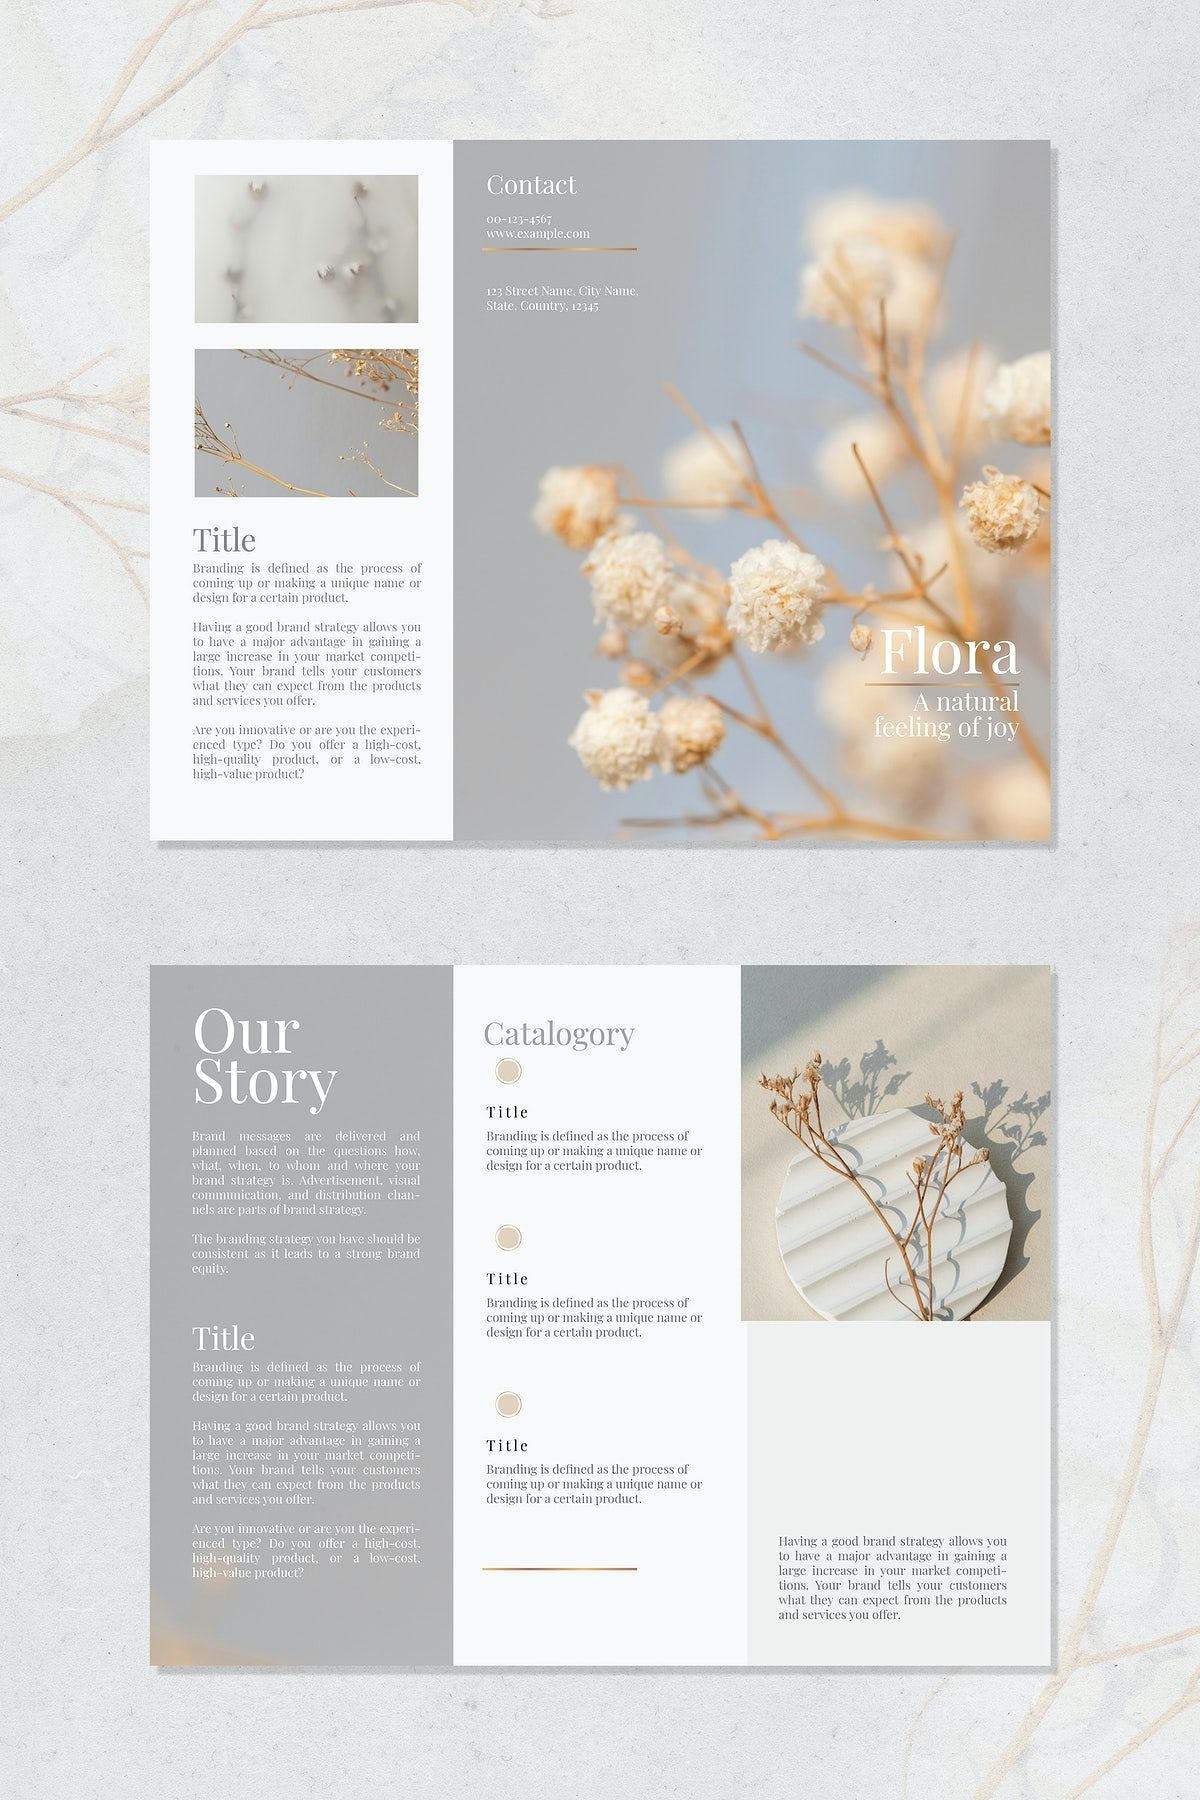 27 Download premium vector of Flower shop brochure template vector by Sasi about brochure, flyer, luxury title, flower shop, and board brand 2403481